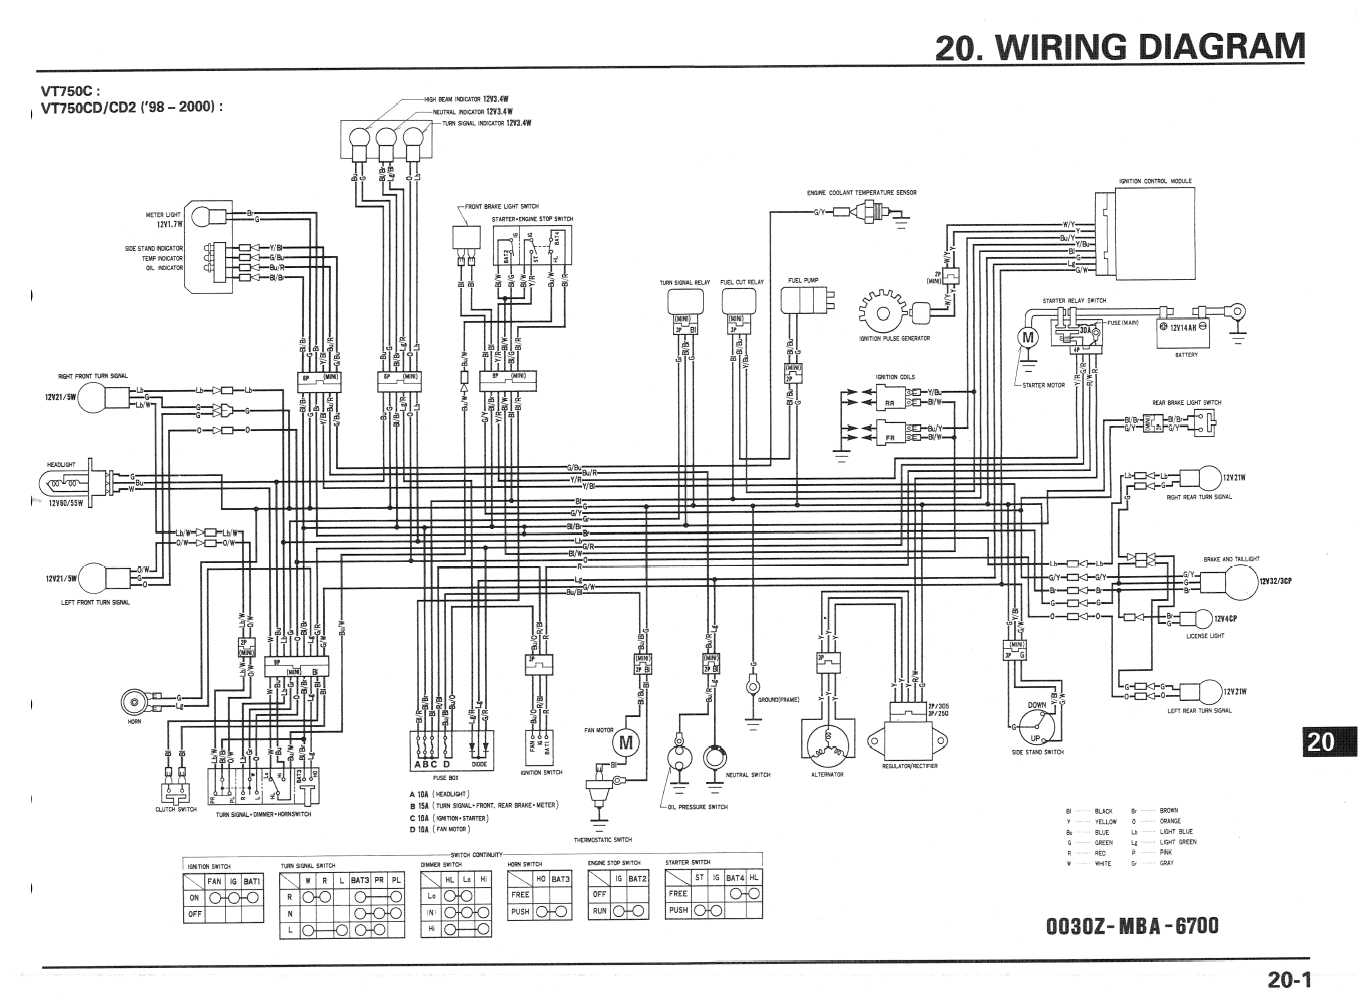 Rear Fog Light Wiring Diagram For Subaru, Rear, Free